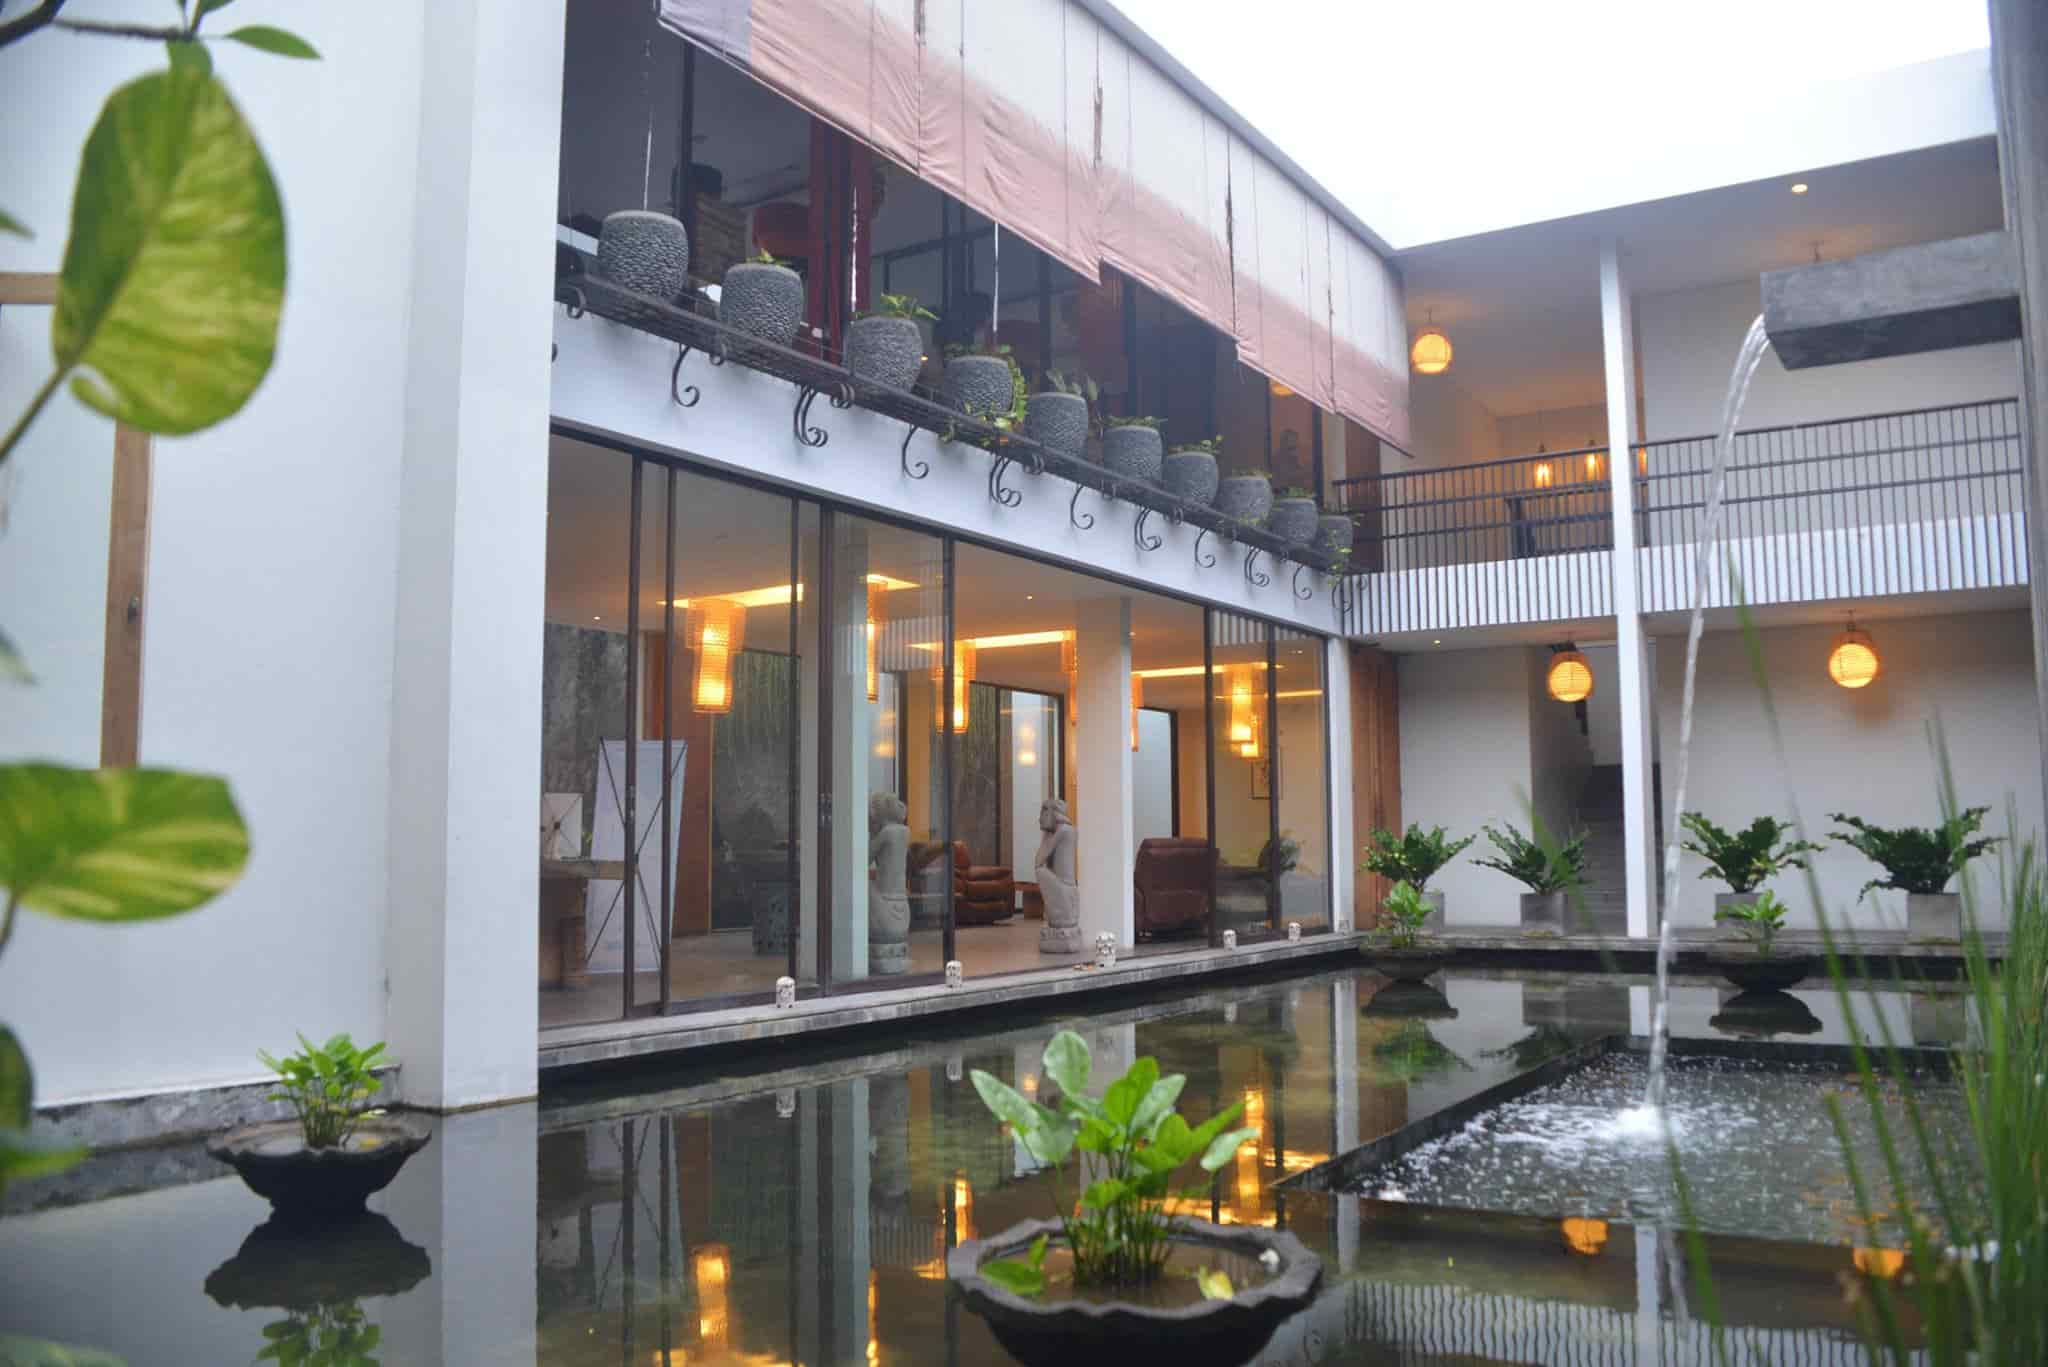 A highly-recommended Bali spa with a touch of nature. Image credit: Lluvia Spa Facebook Page